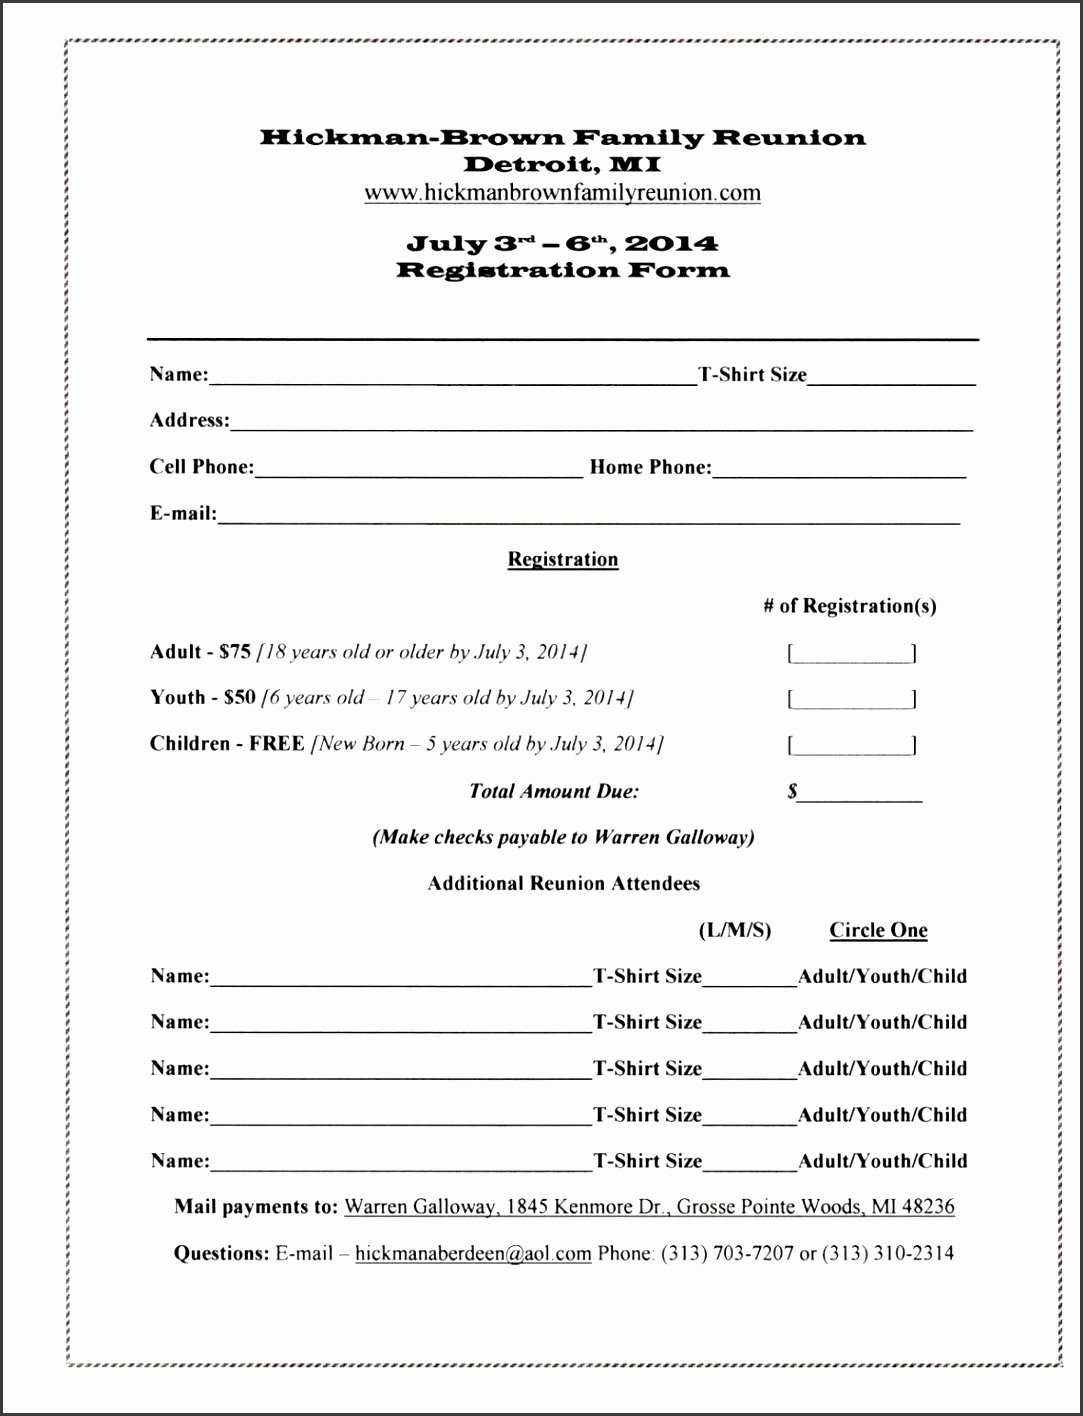 Family Reunion Registration form Doc Fresh 7 Family Reunion Registration form Template